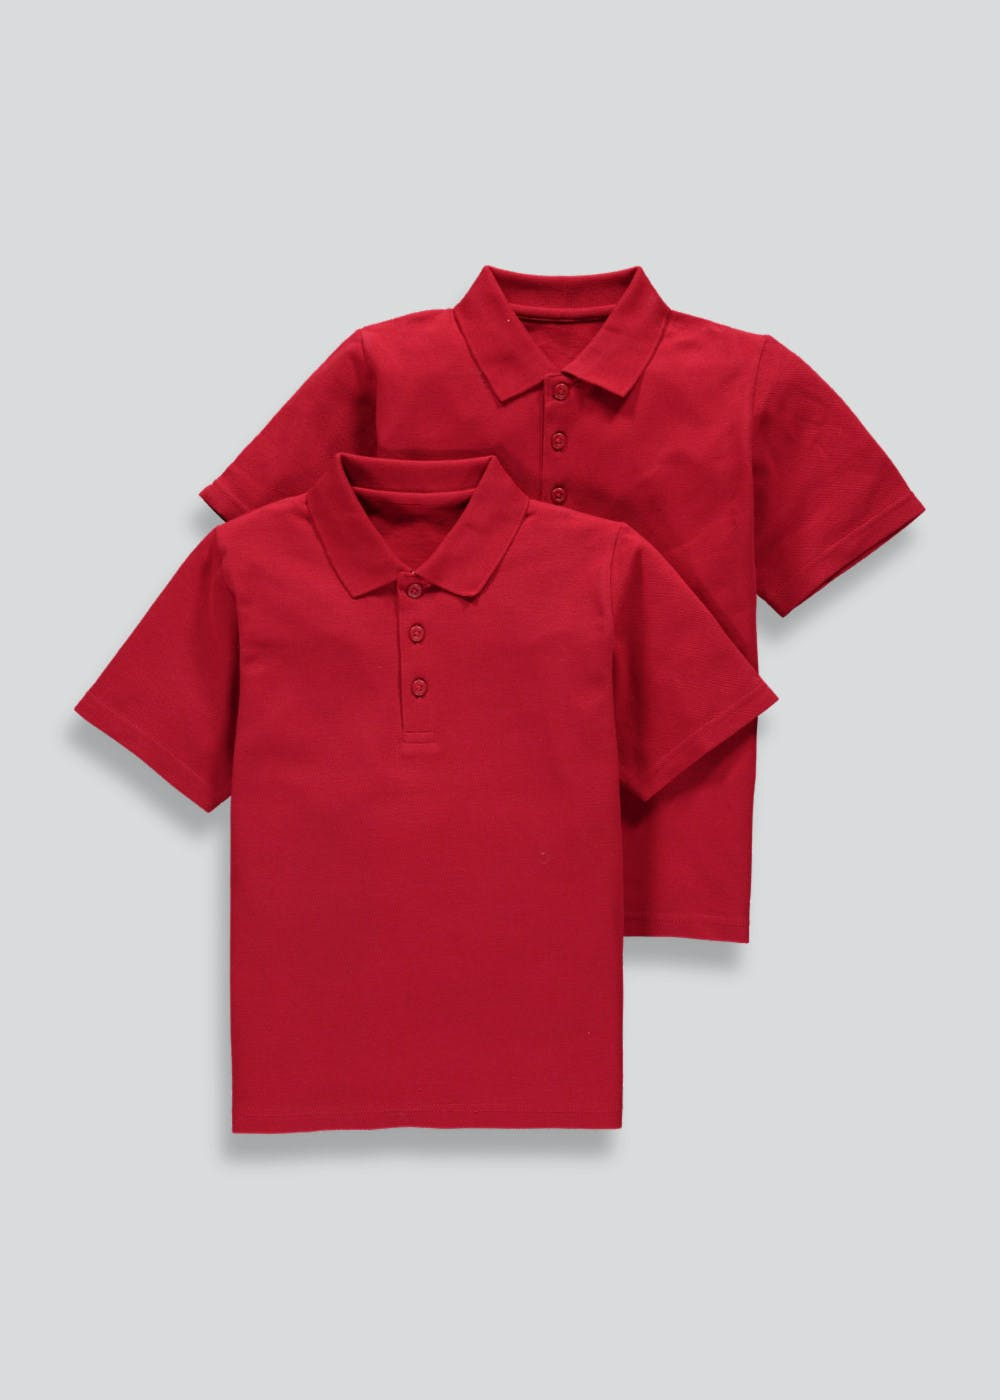 Kids 2 Pack Red School Polo Shirts (3-16yrs) – Red